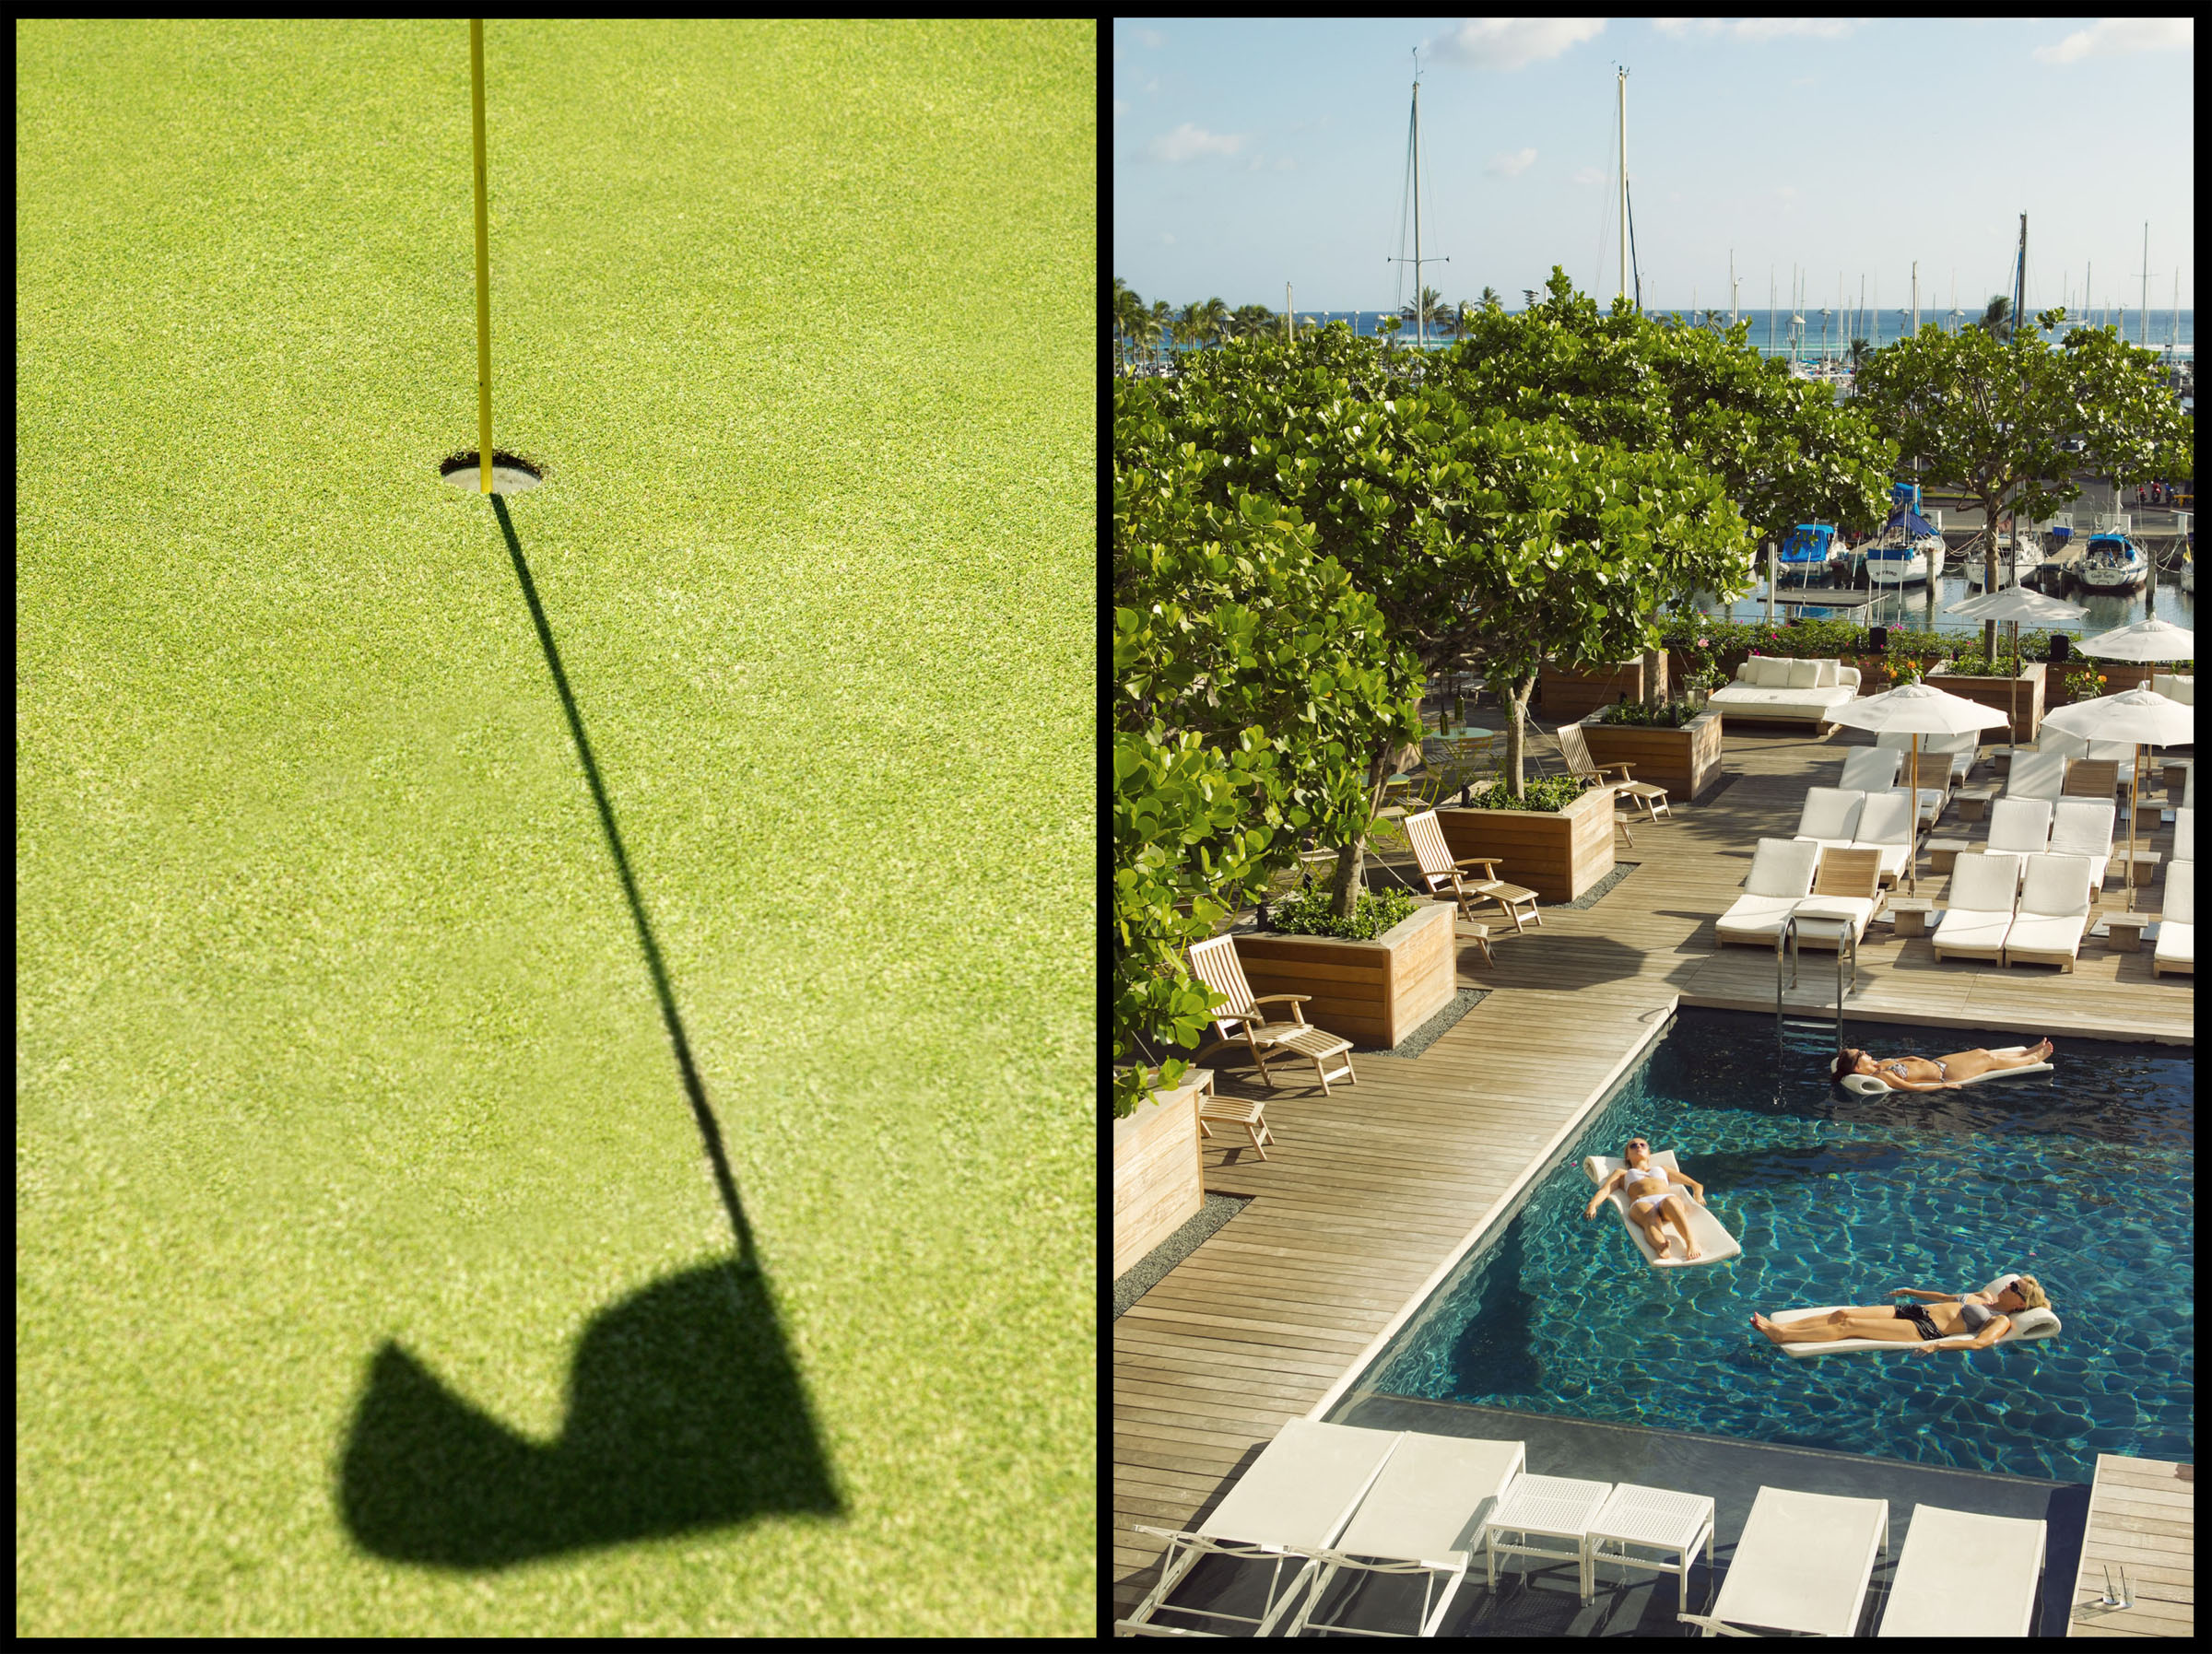 Golf on the Big Island.  Relaxing in the pool at the Modern Honolulu for the The New York Times.